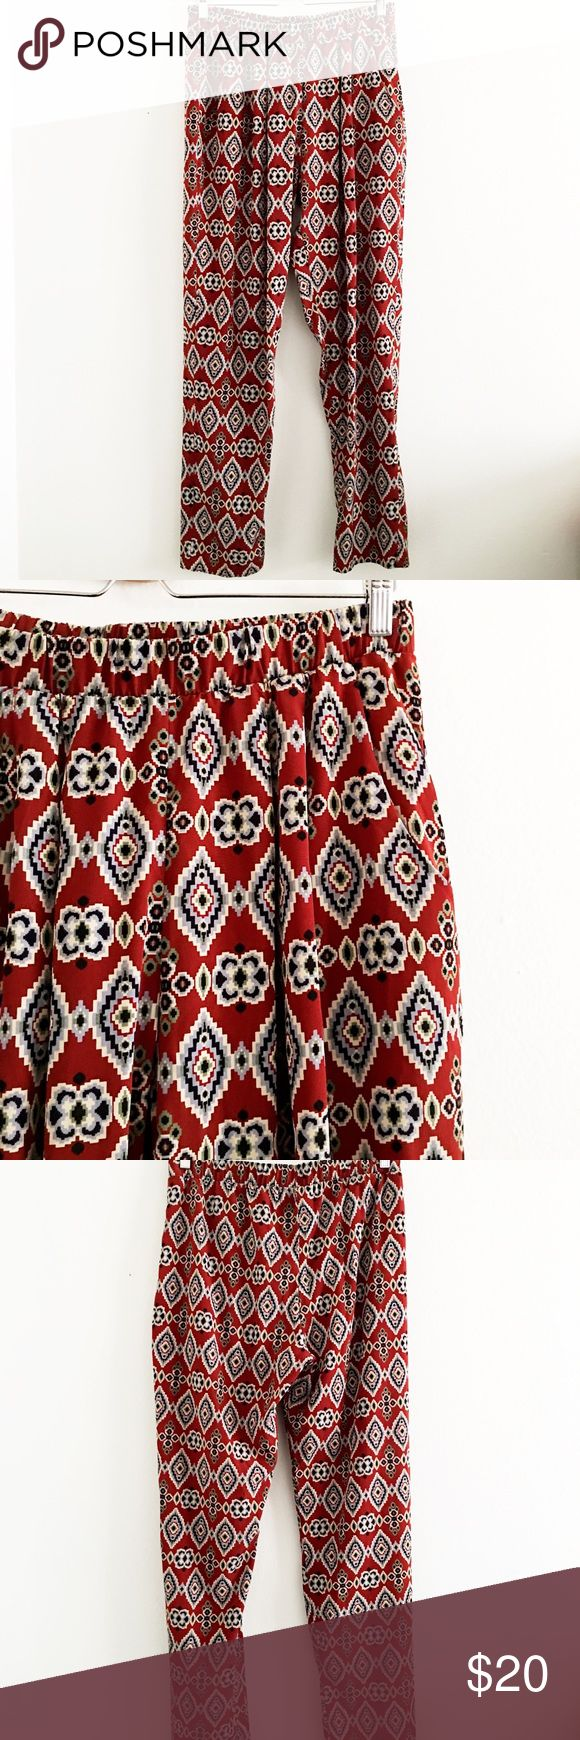 Fun Aztec Print Pants The pants are fun and comfortable! Love the Aztec print and tapered pant style. Perfect for traveling so you can be stylish and comfy. 100% polyester bobeau Pants